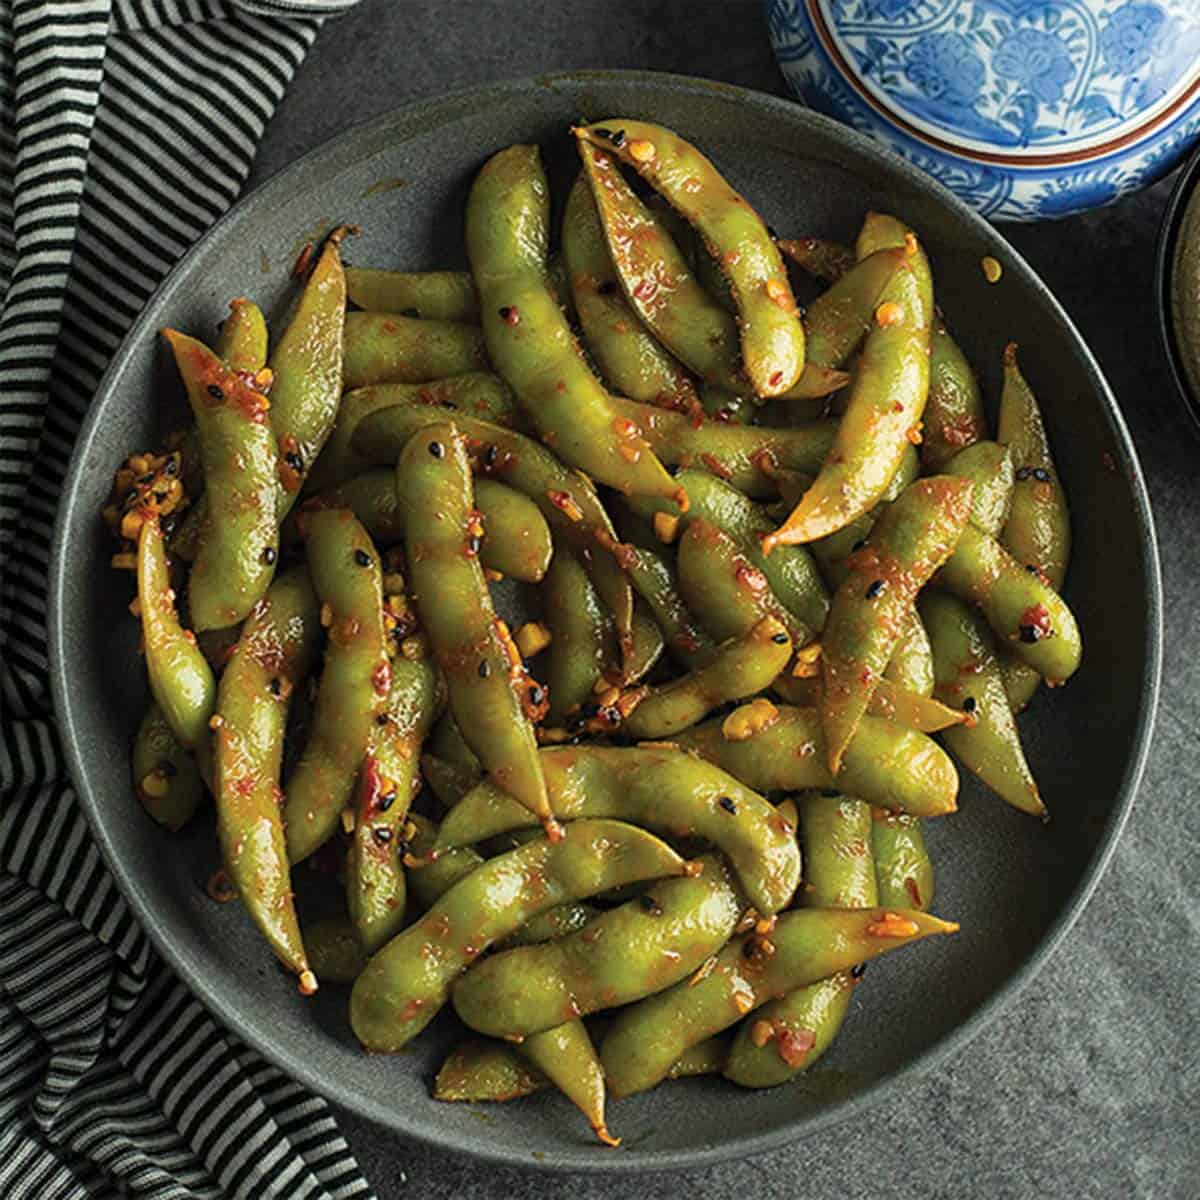 spicy garlic edamame is ready like a flash perfect for your spicy cravings. Made with frozen edamame, garlic, and chili sauce.